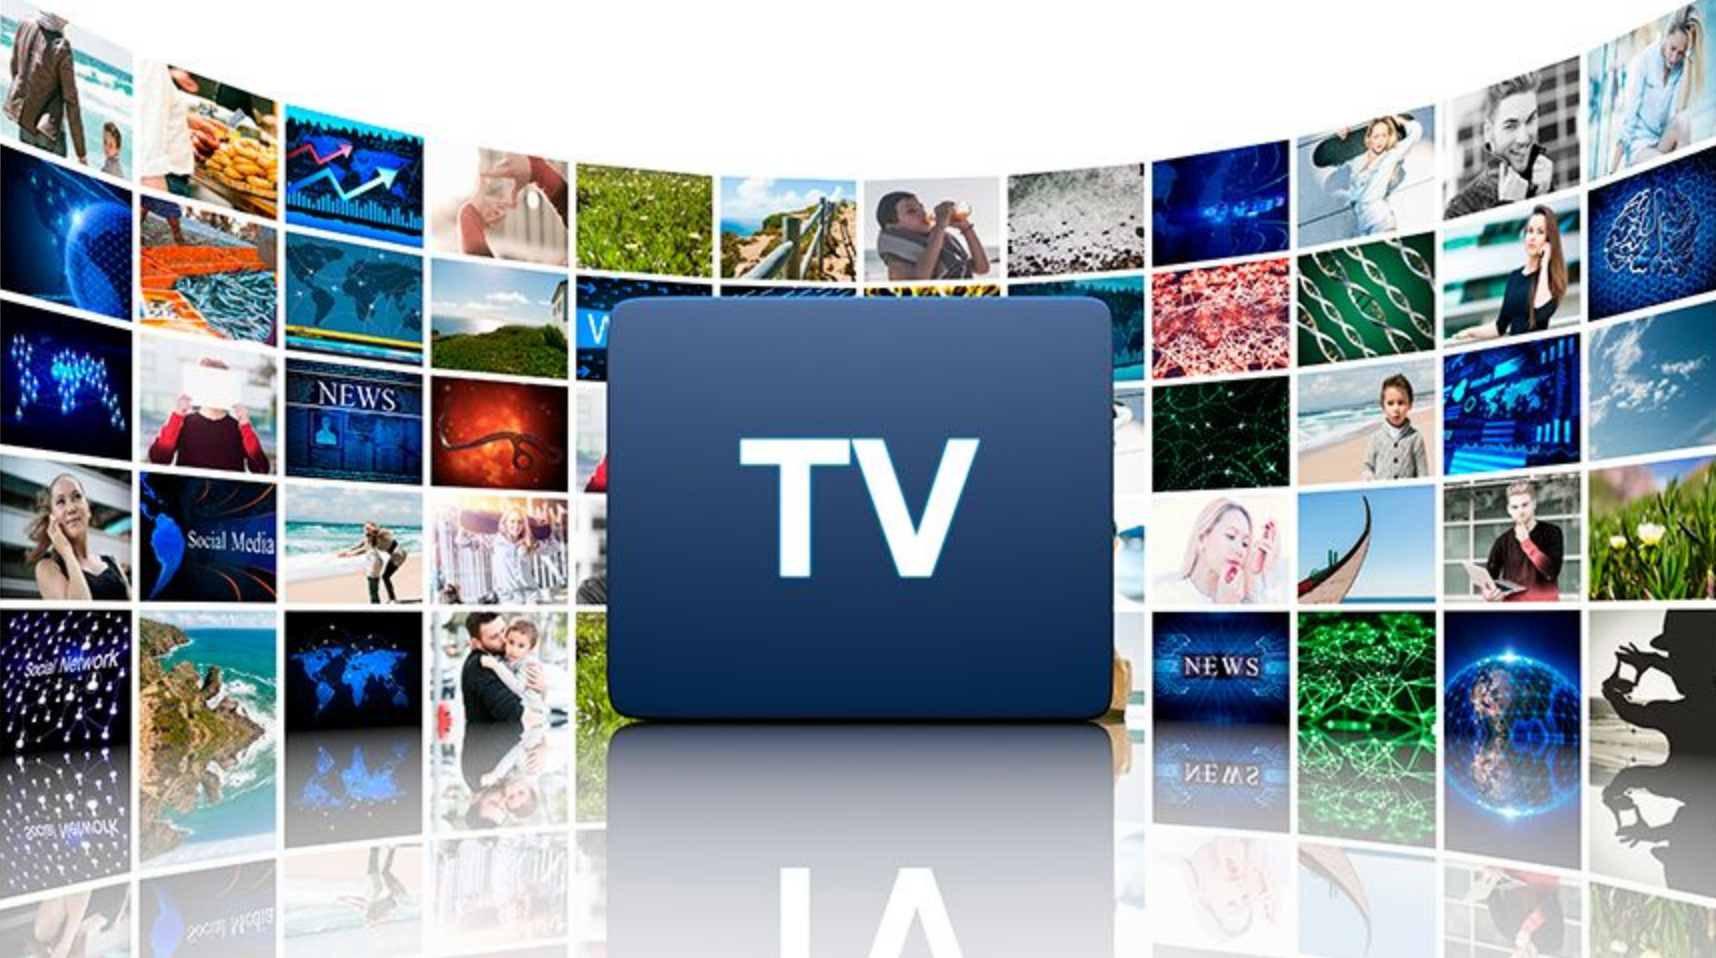 Here are some of the features of the IPTV service provider